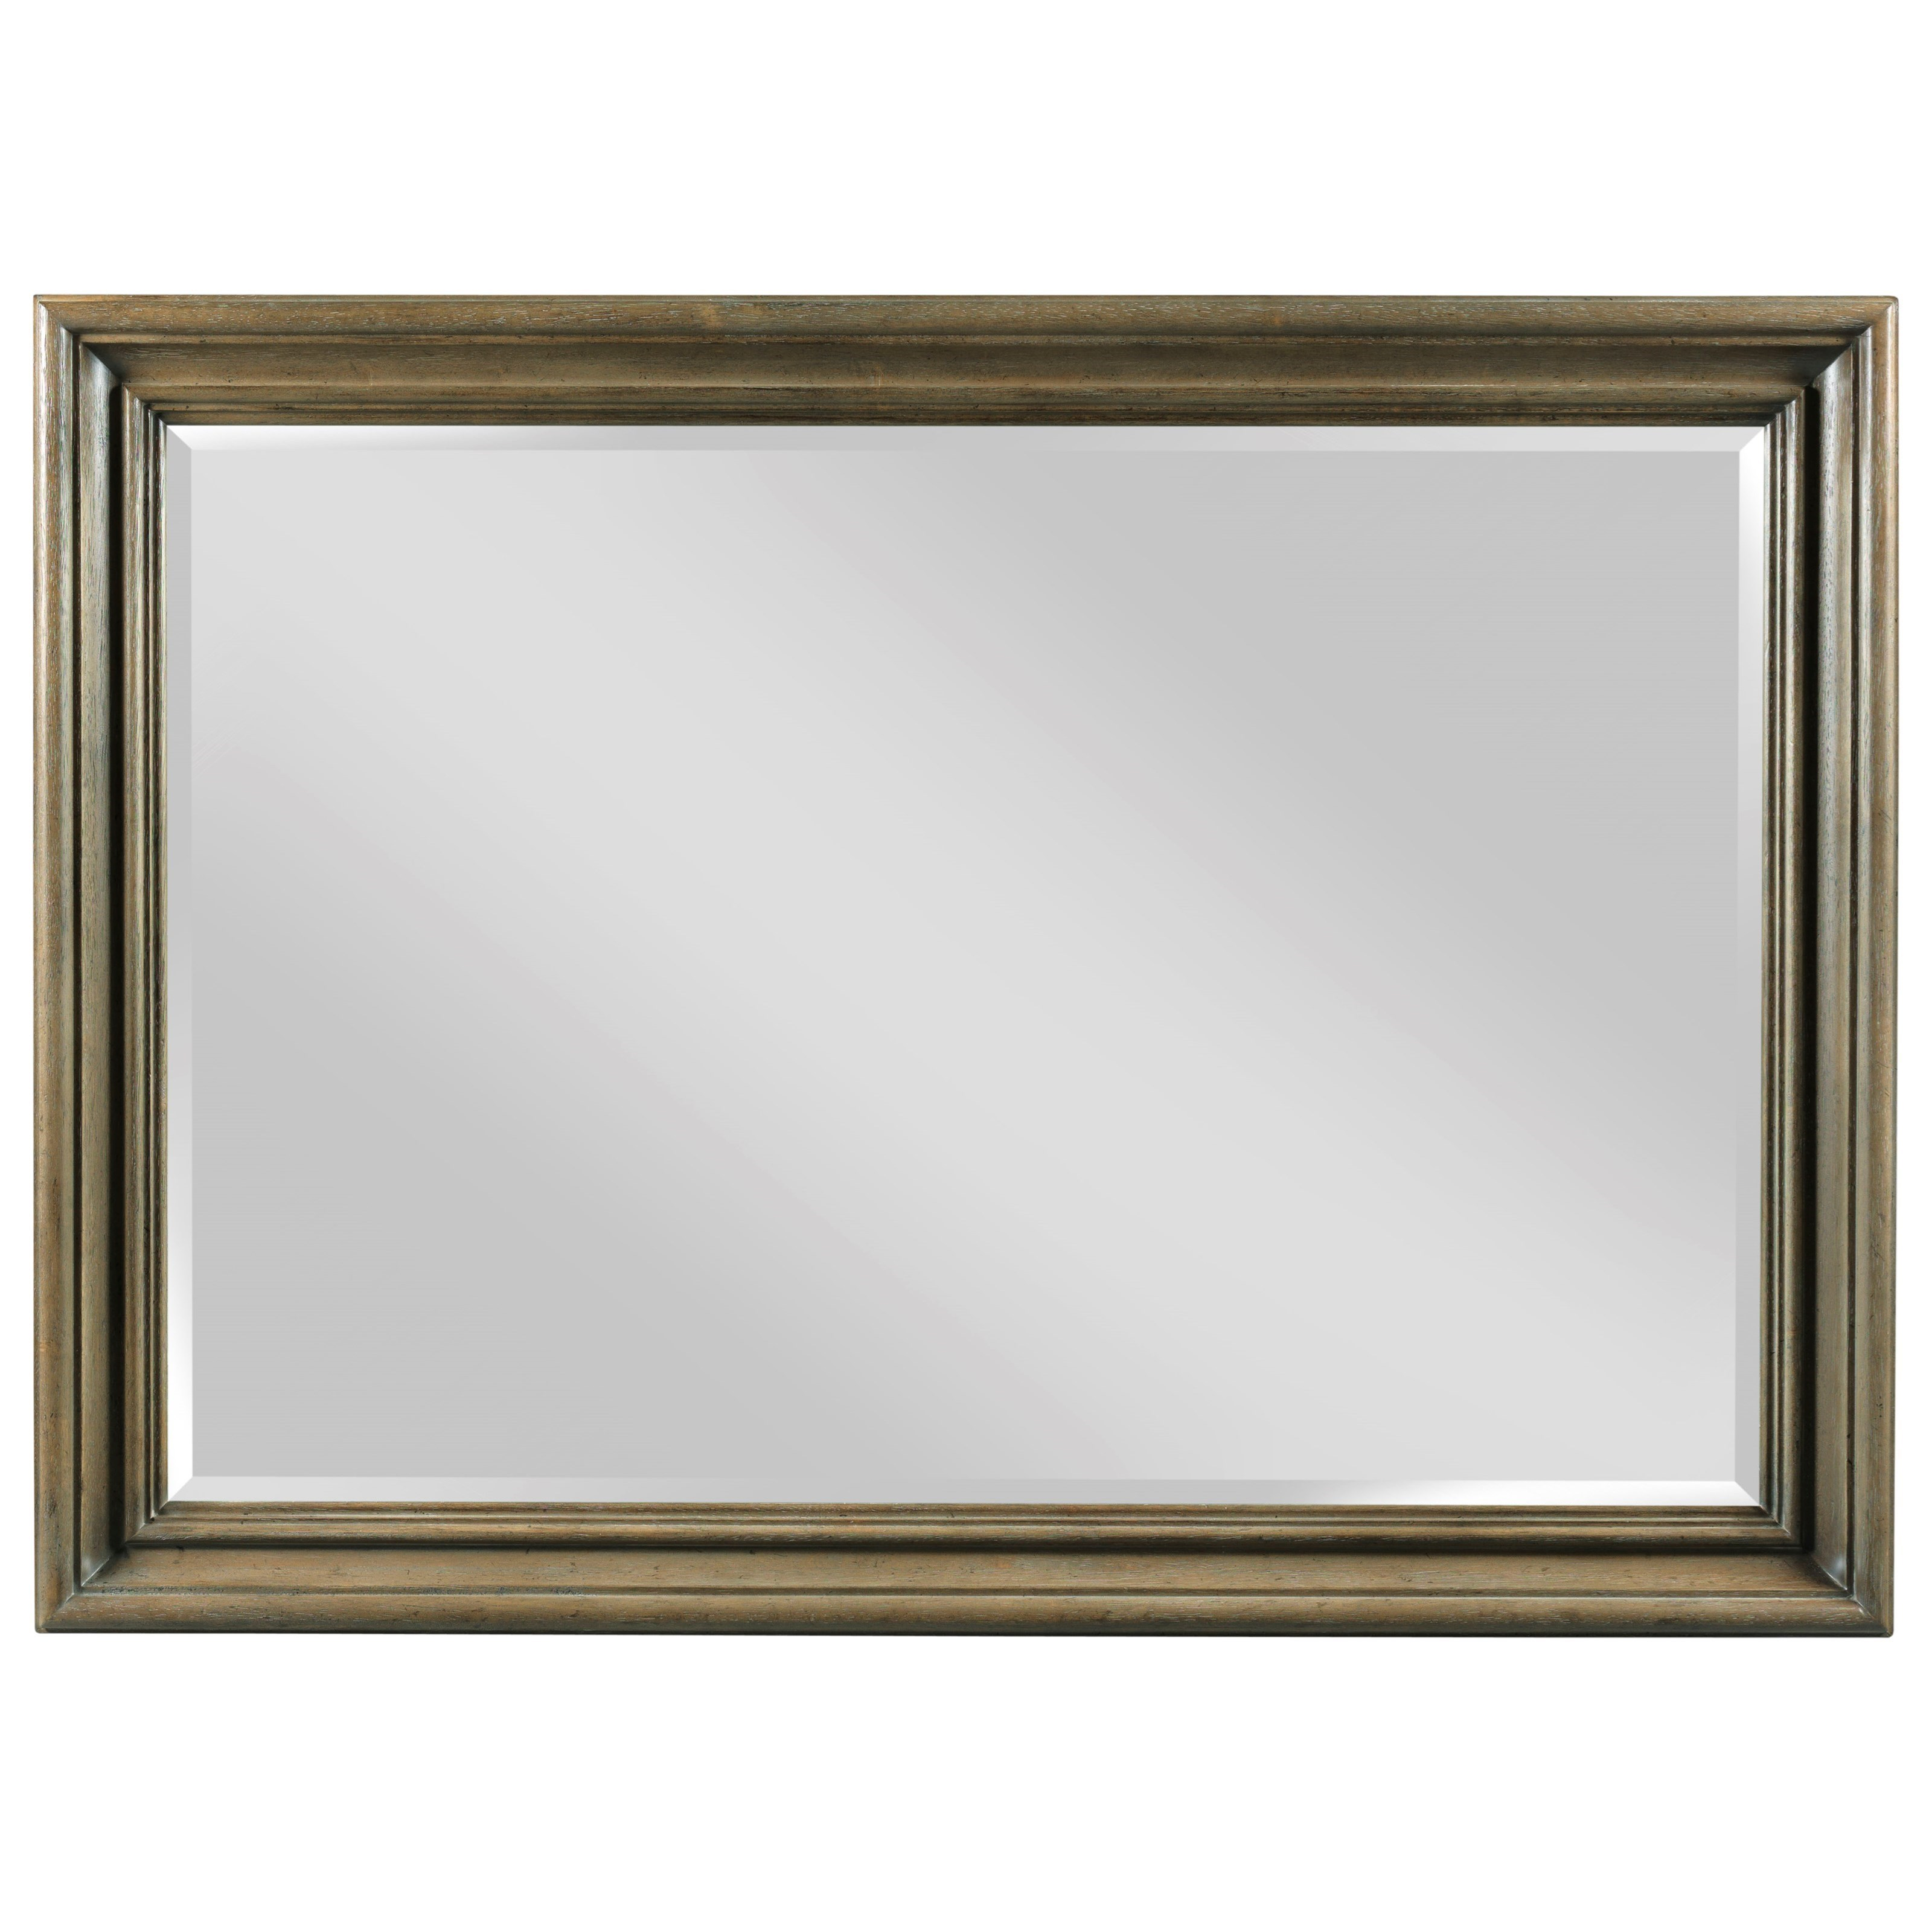 Anson Mirror by American Drew at Northeast Factory Direct